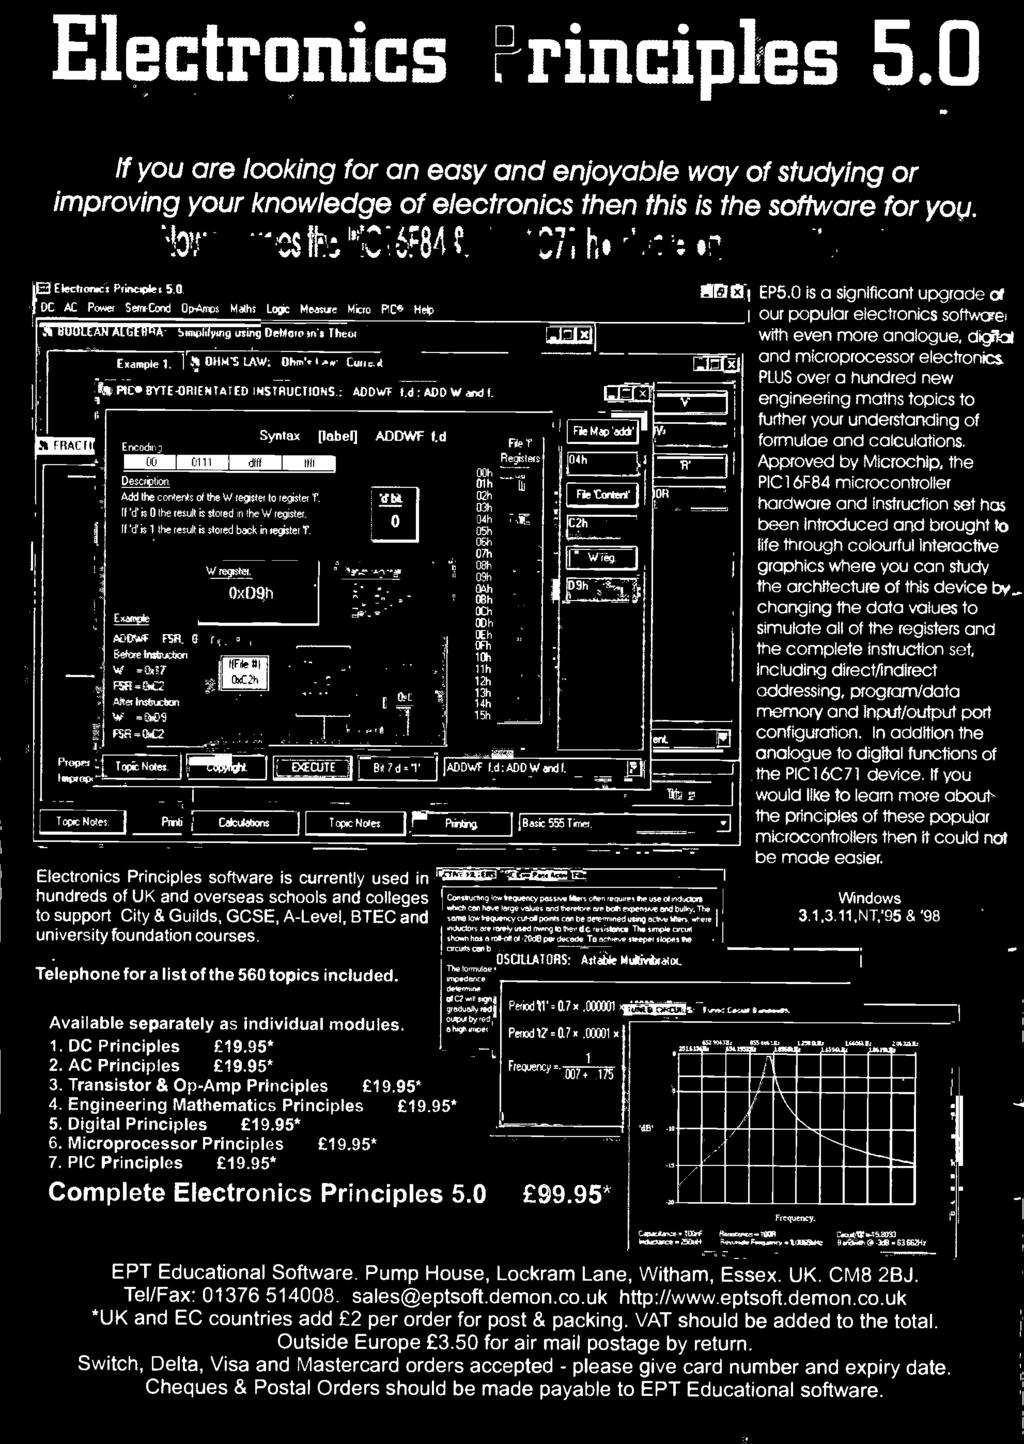 T E Airwaves Data O Electronics Plus Ionising Radiation And Stripboard Veroboard Matrix Board Design Software Electrical F Principles Is Currently Used In Hundreds Of Uk Overseas